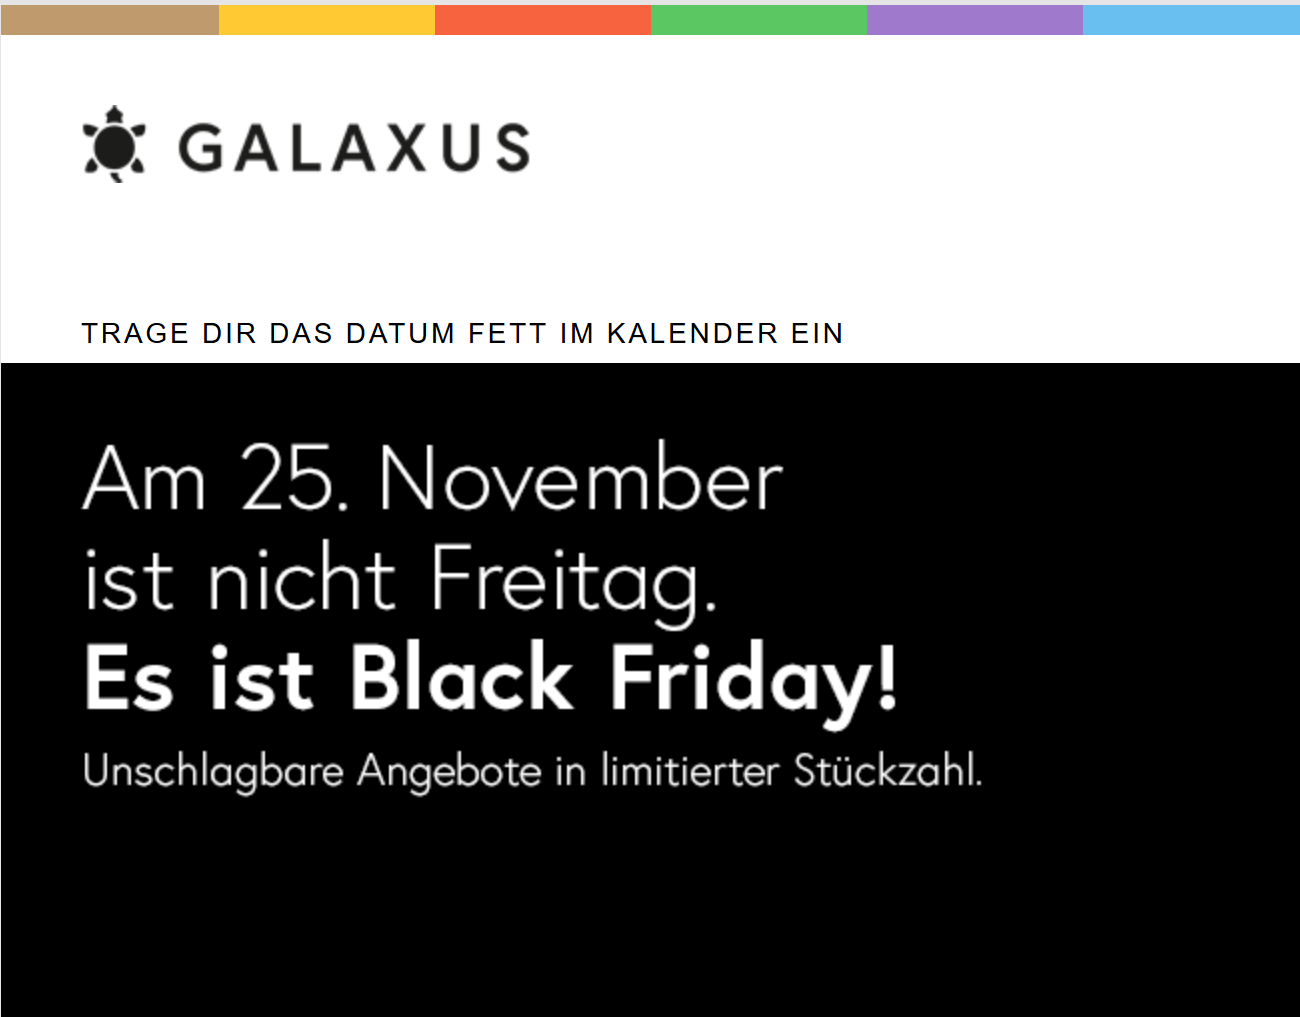 live shopping deals bei galaxus black friday schweiz 2018. Black Bedroom Furniture Sets. Home Design Ideas